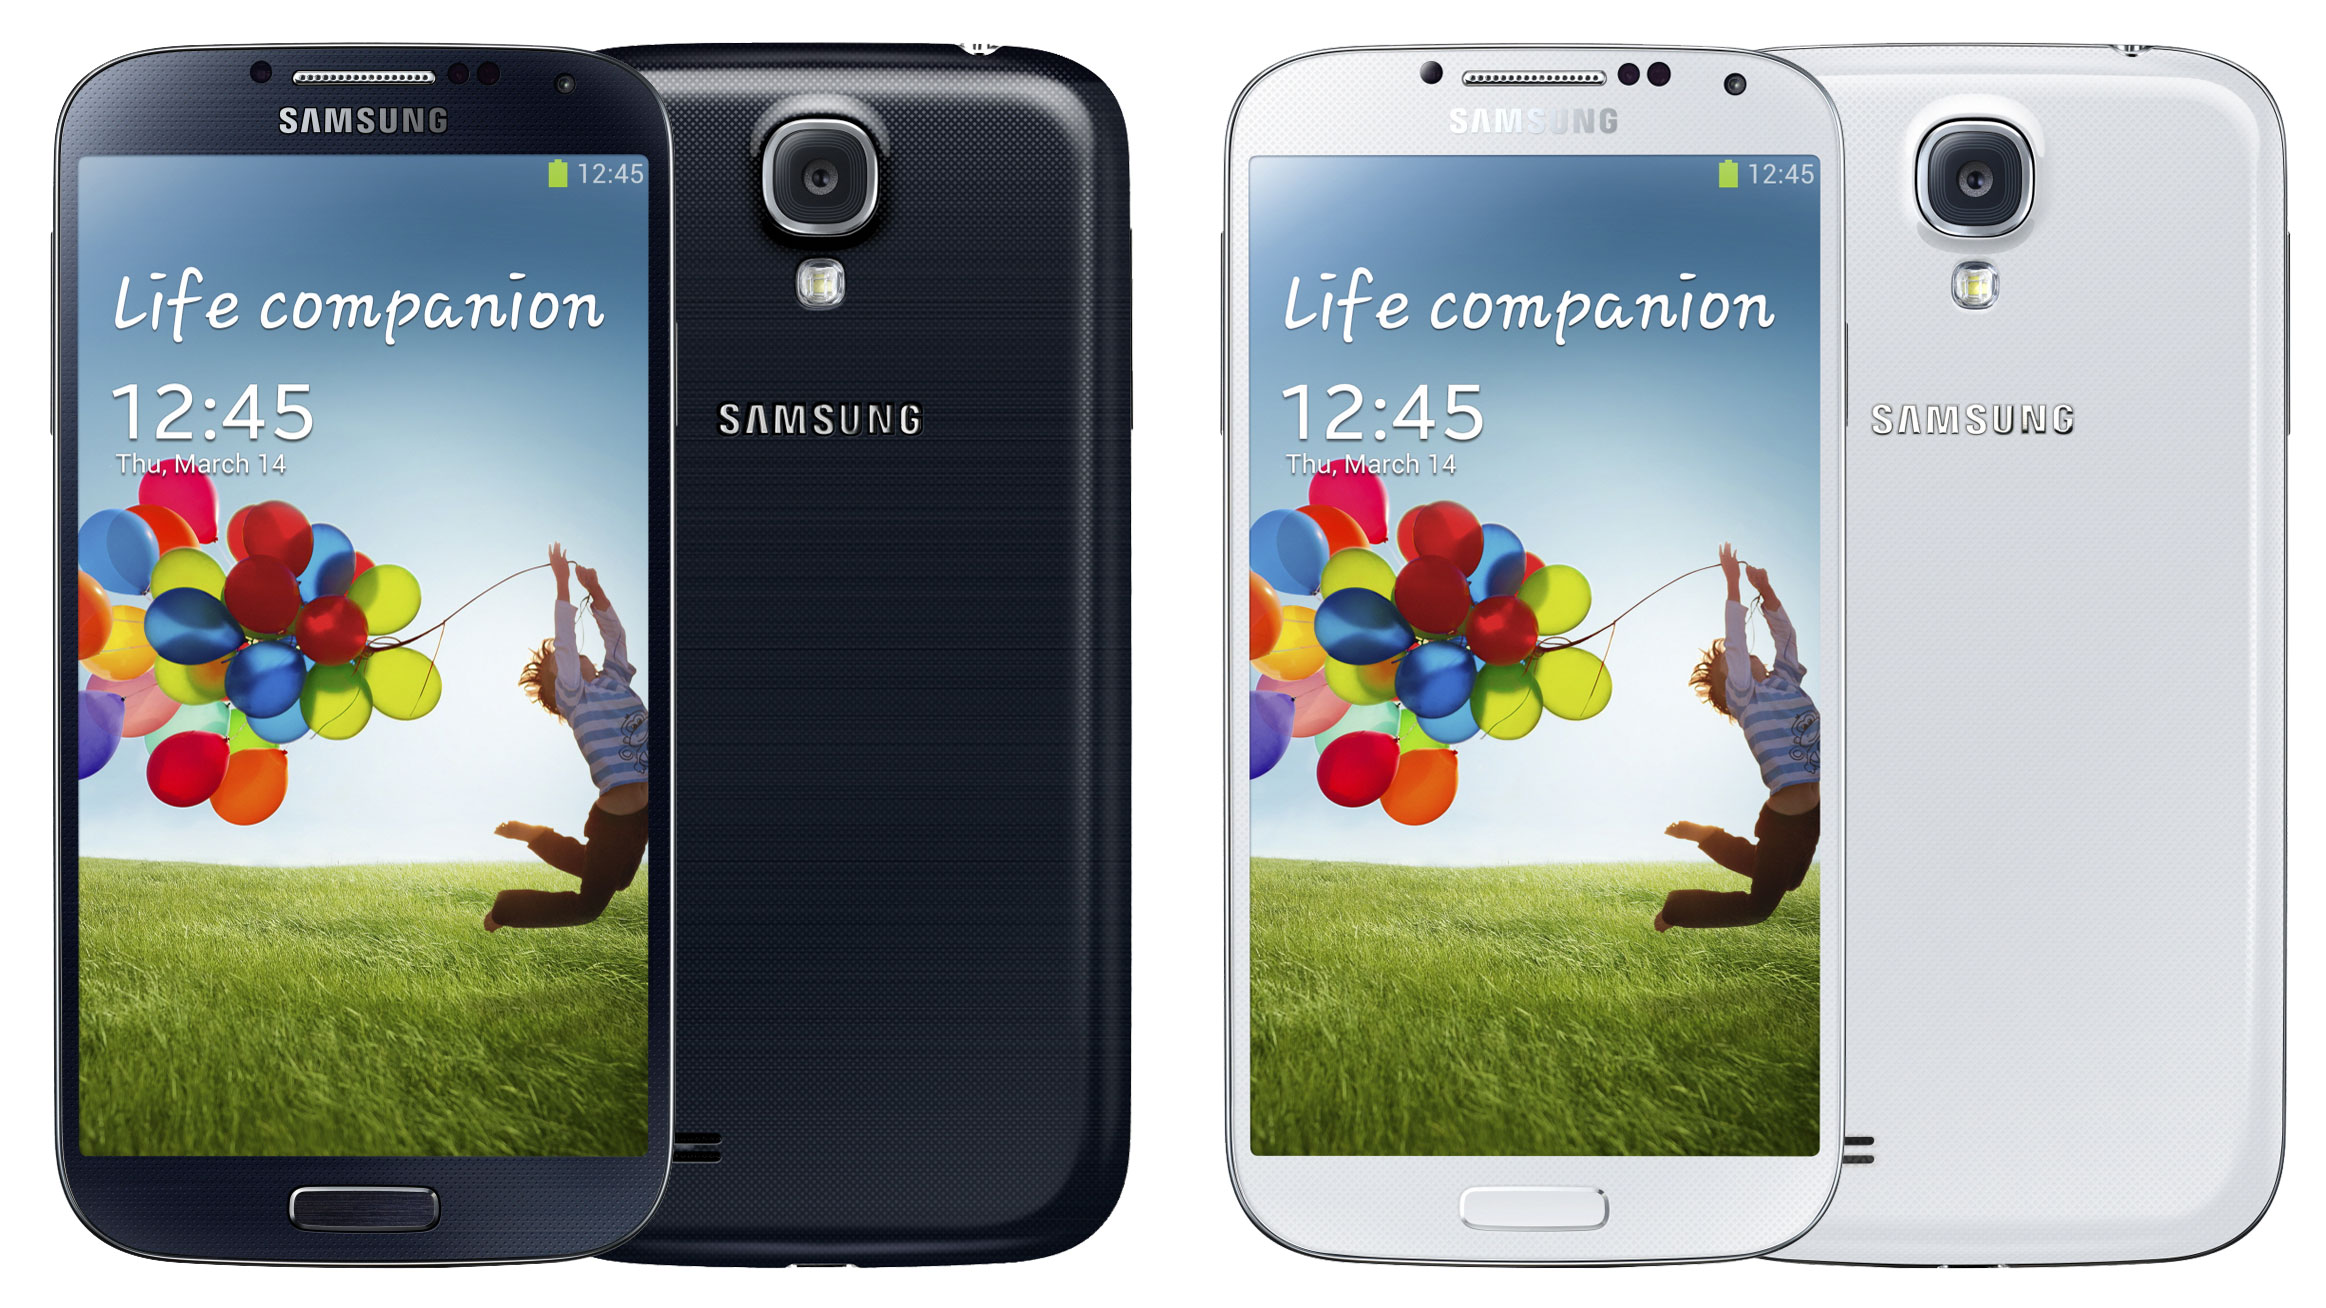 Samsung Galaxy S4 release date and price: When can I get it ...